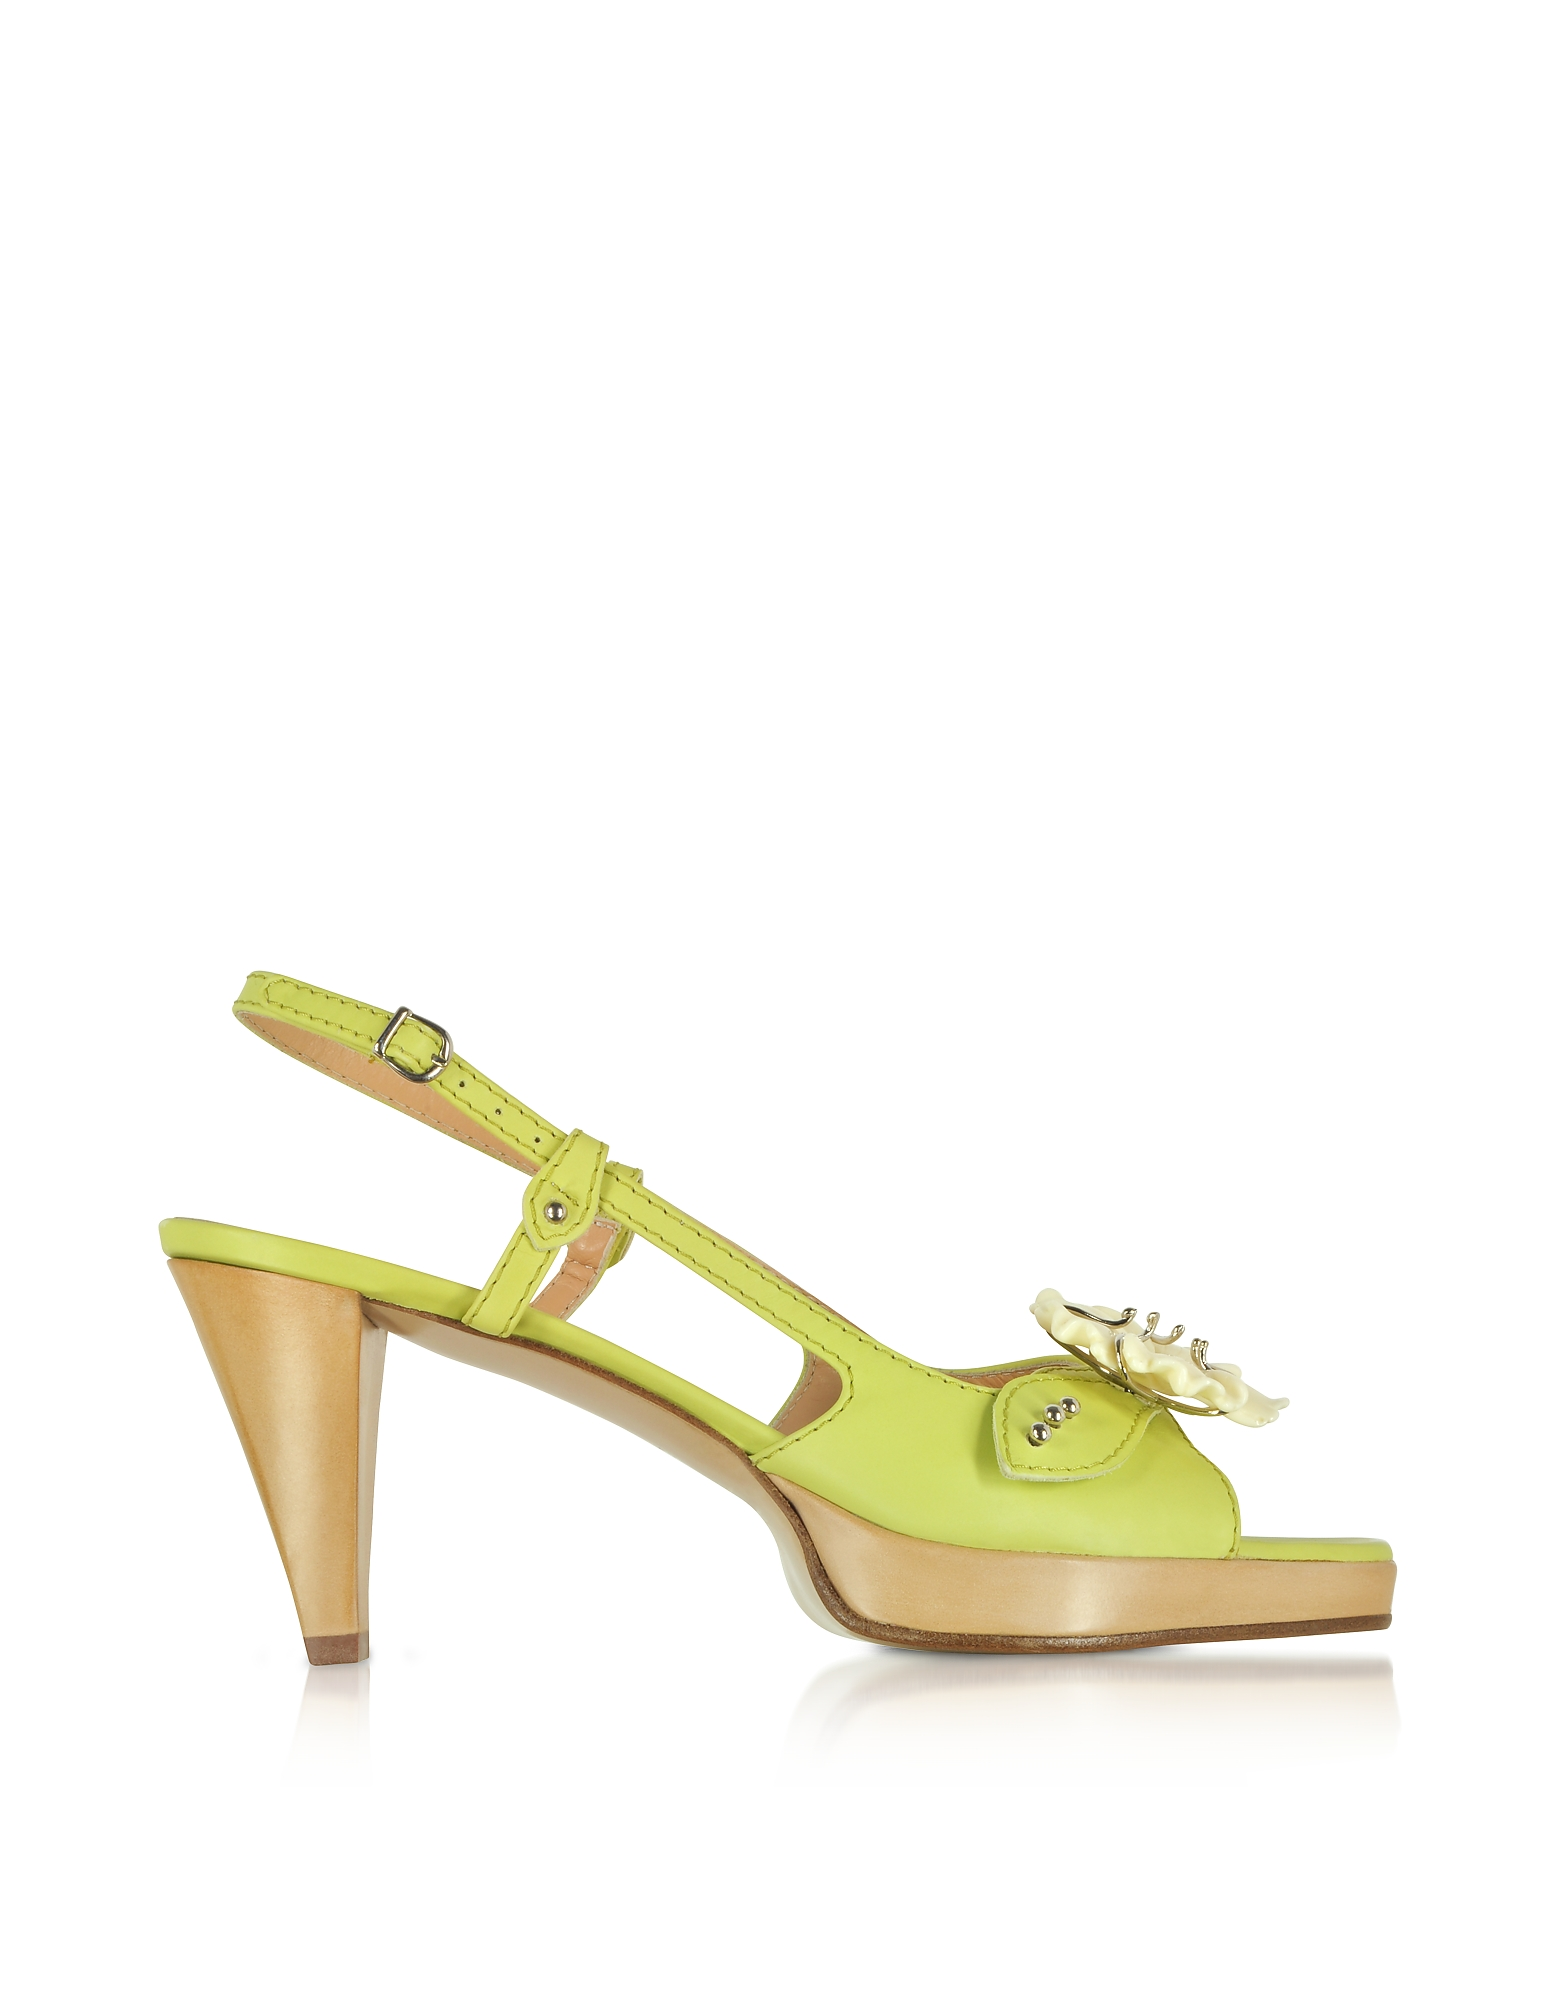 Borgo degli Ulivi Shoes, Flower Pistachio Platform Leather Sandal Shoes